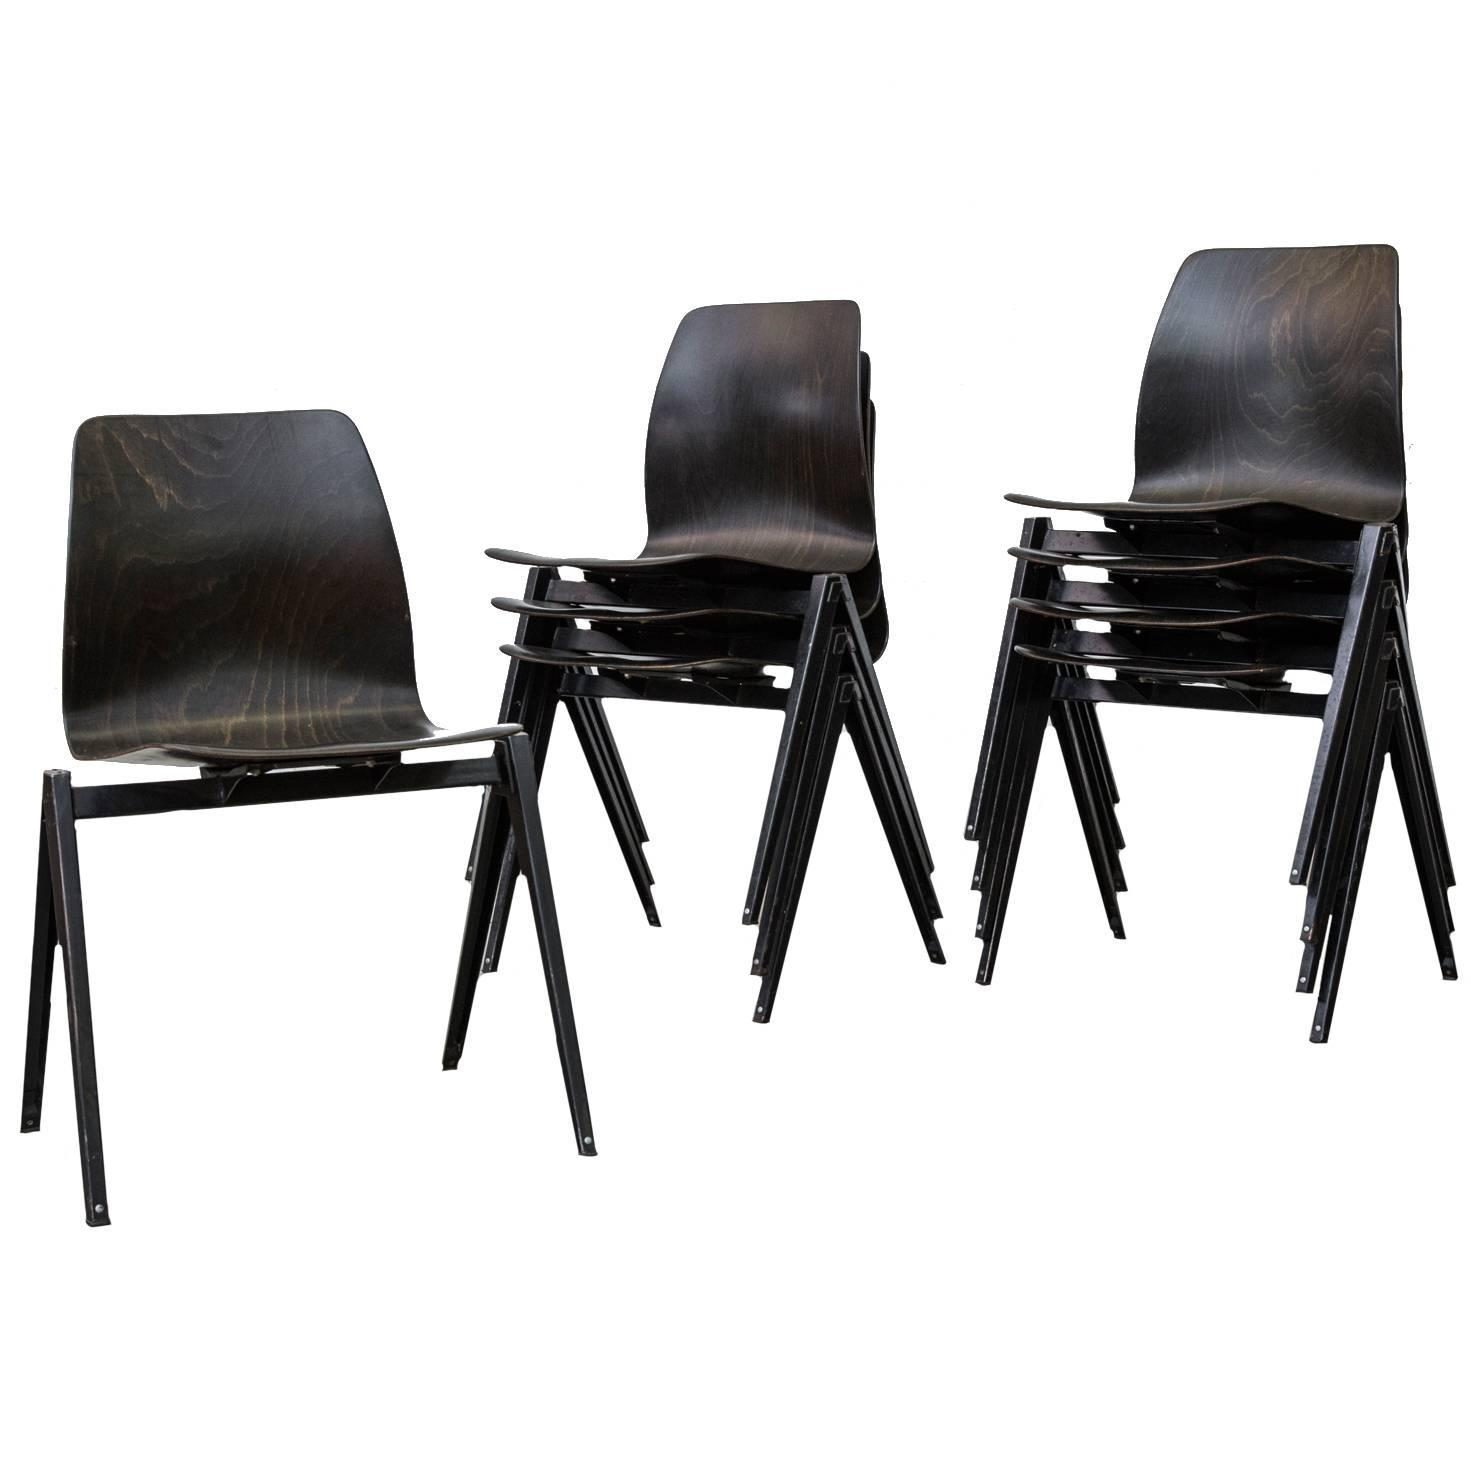 Set of Eight Jean Prouve Inspired Industrial Stacking Chairs at